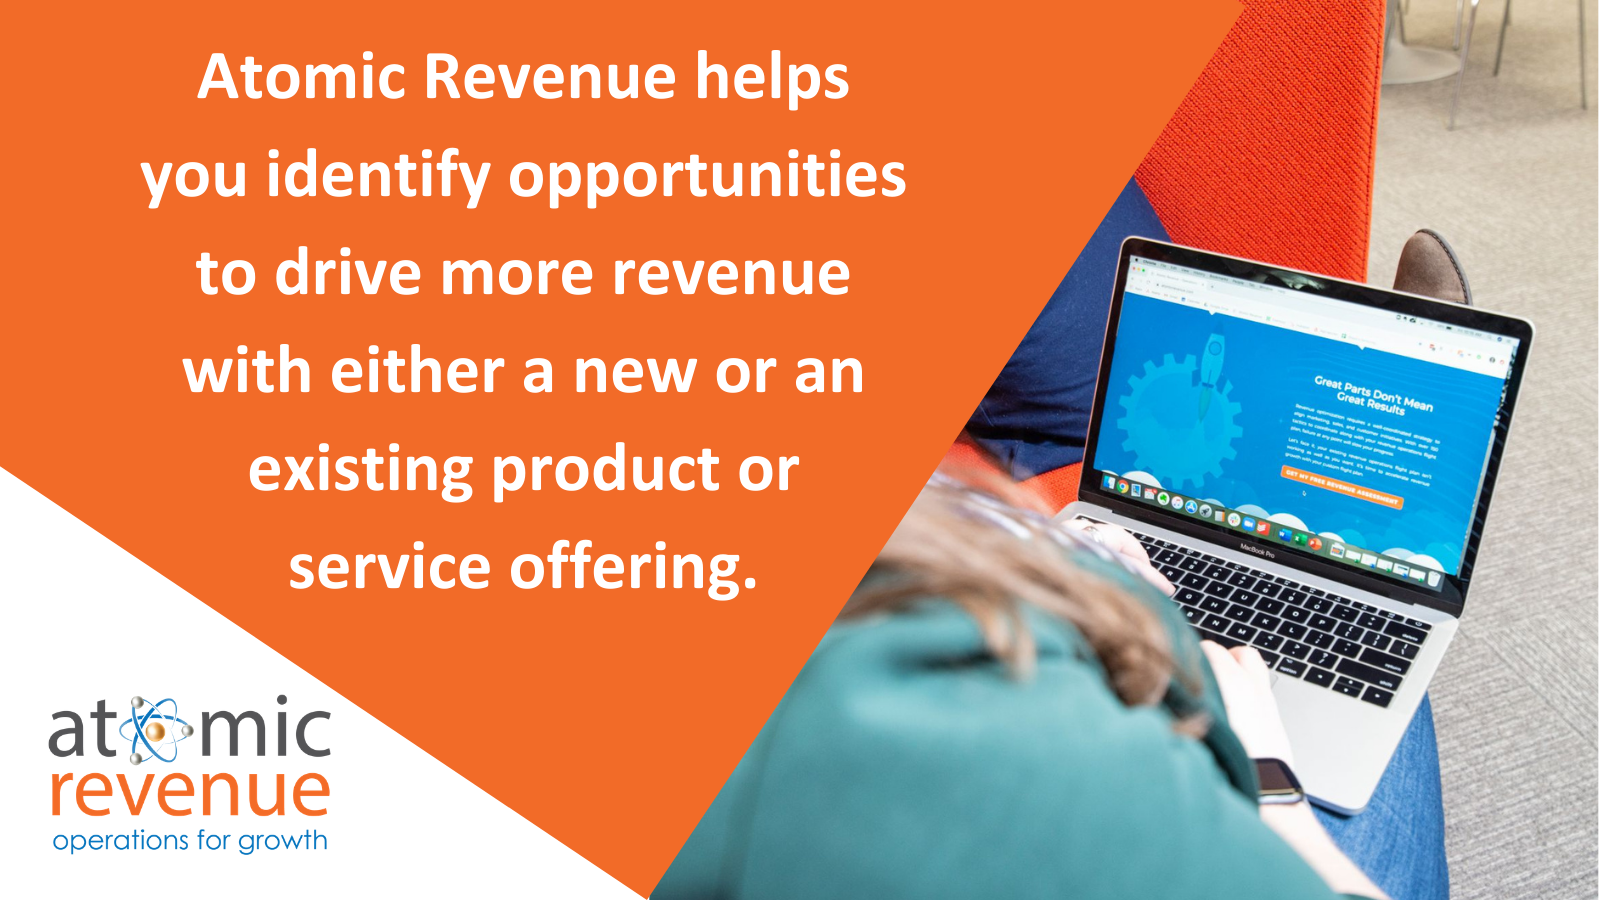 atomic revenue identify opportunities drive more revenue new existing product service offering